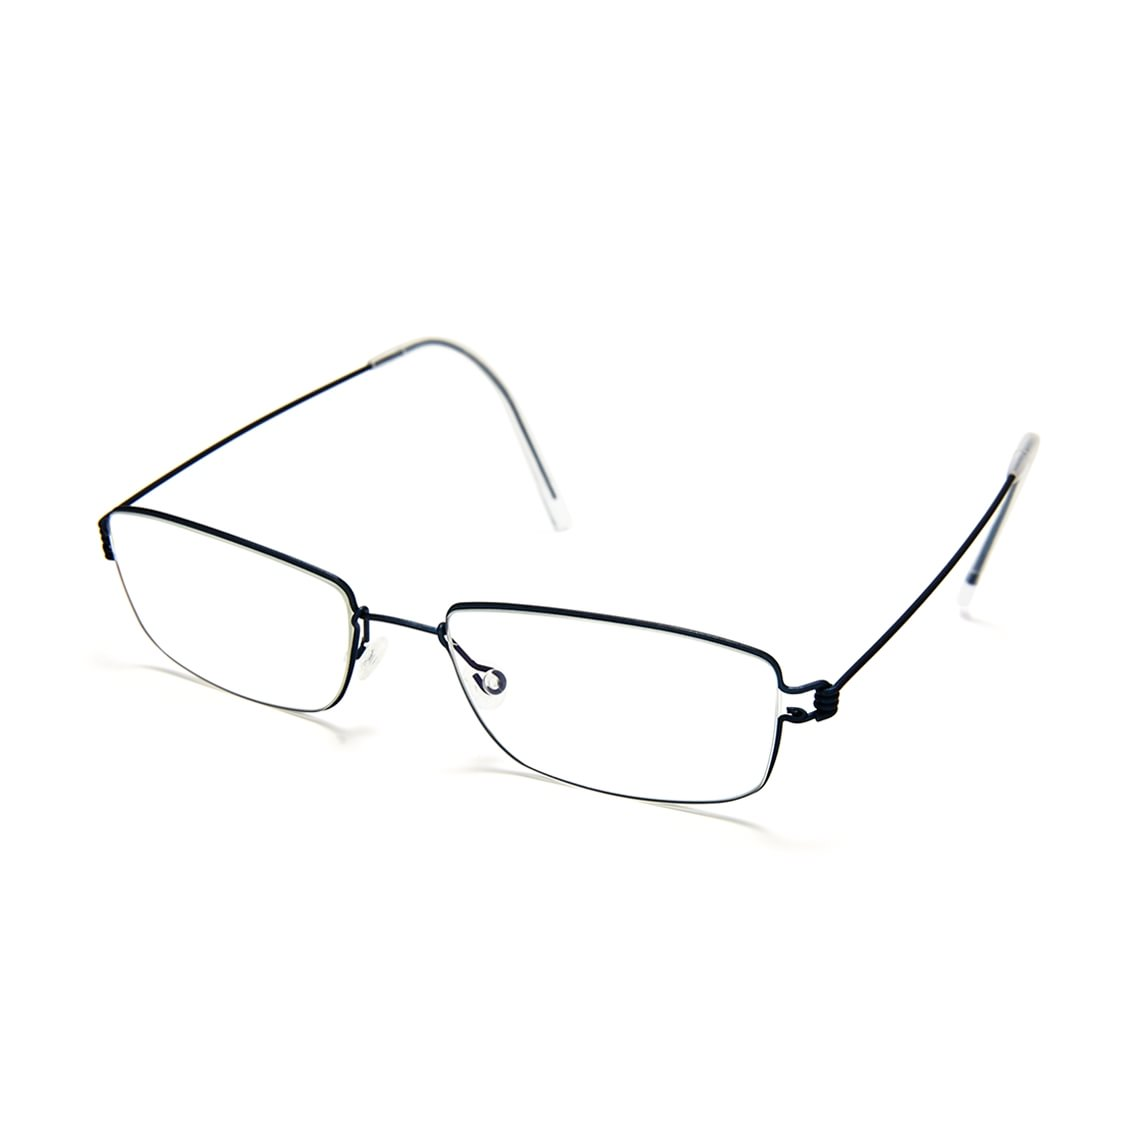 Lindberg  Rim Alex basic temple U13